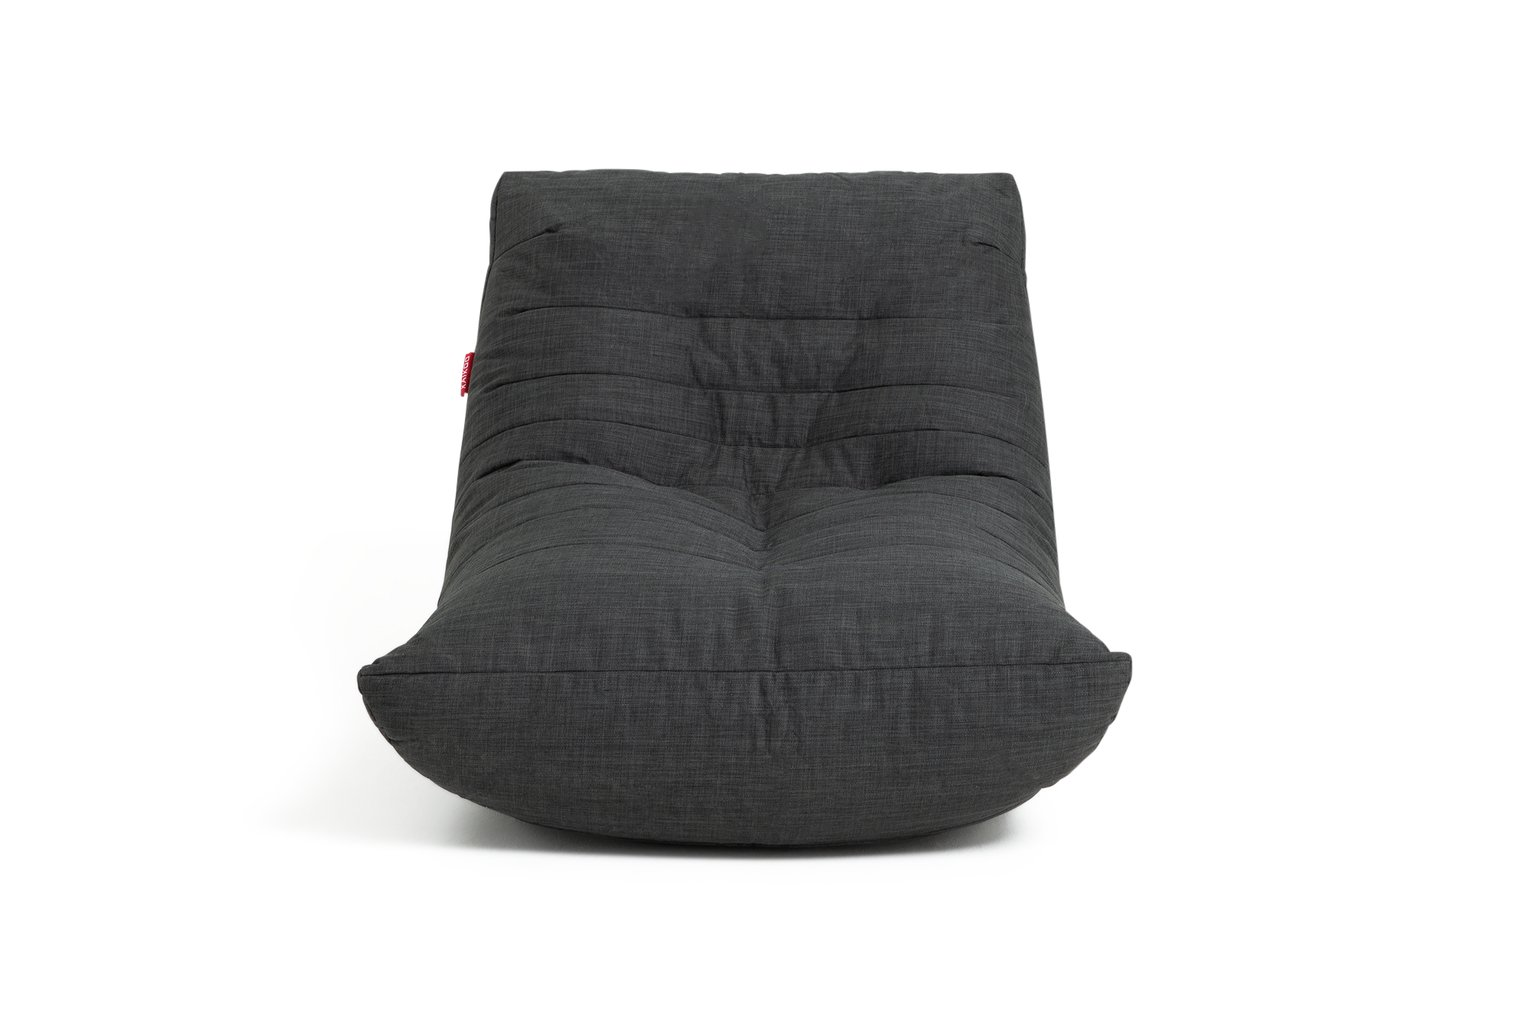 Argos Home Fabric Lounger Chair - Charcoal  sc 1 st  Argos : bean bag lounge chair - lorbestier.org